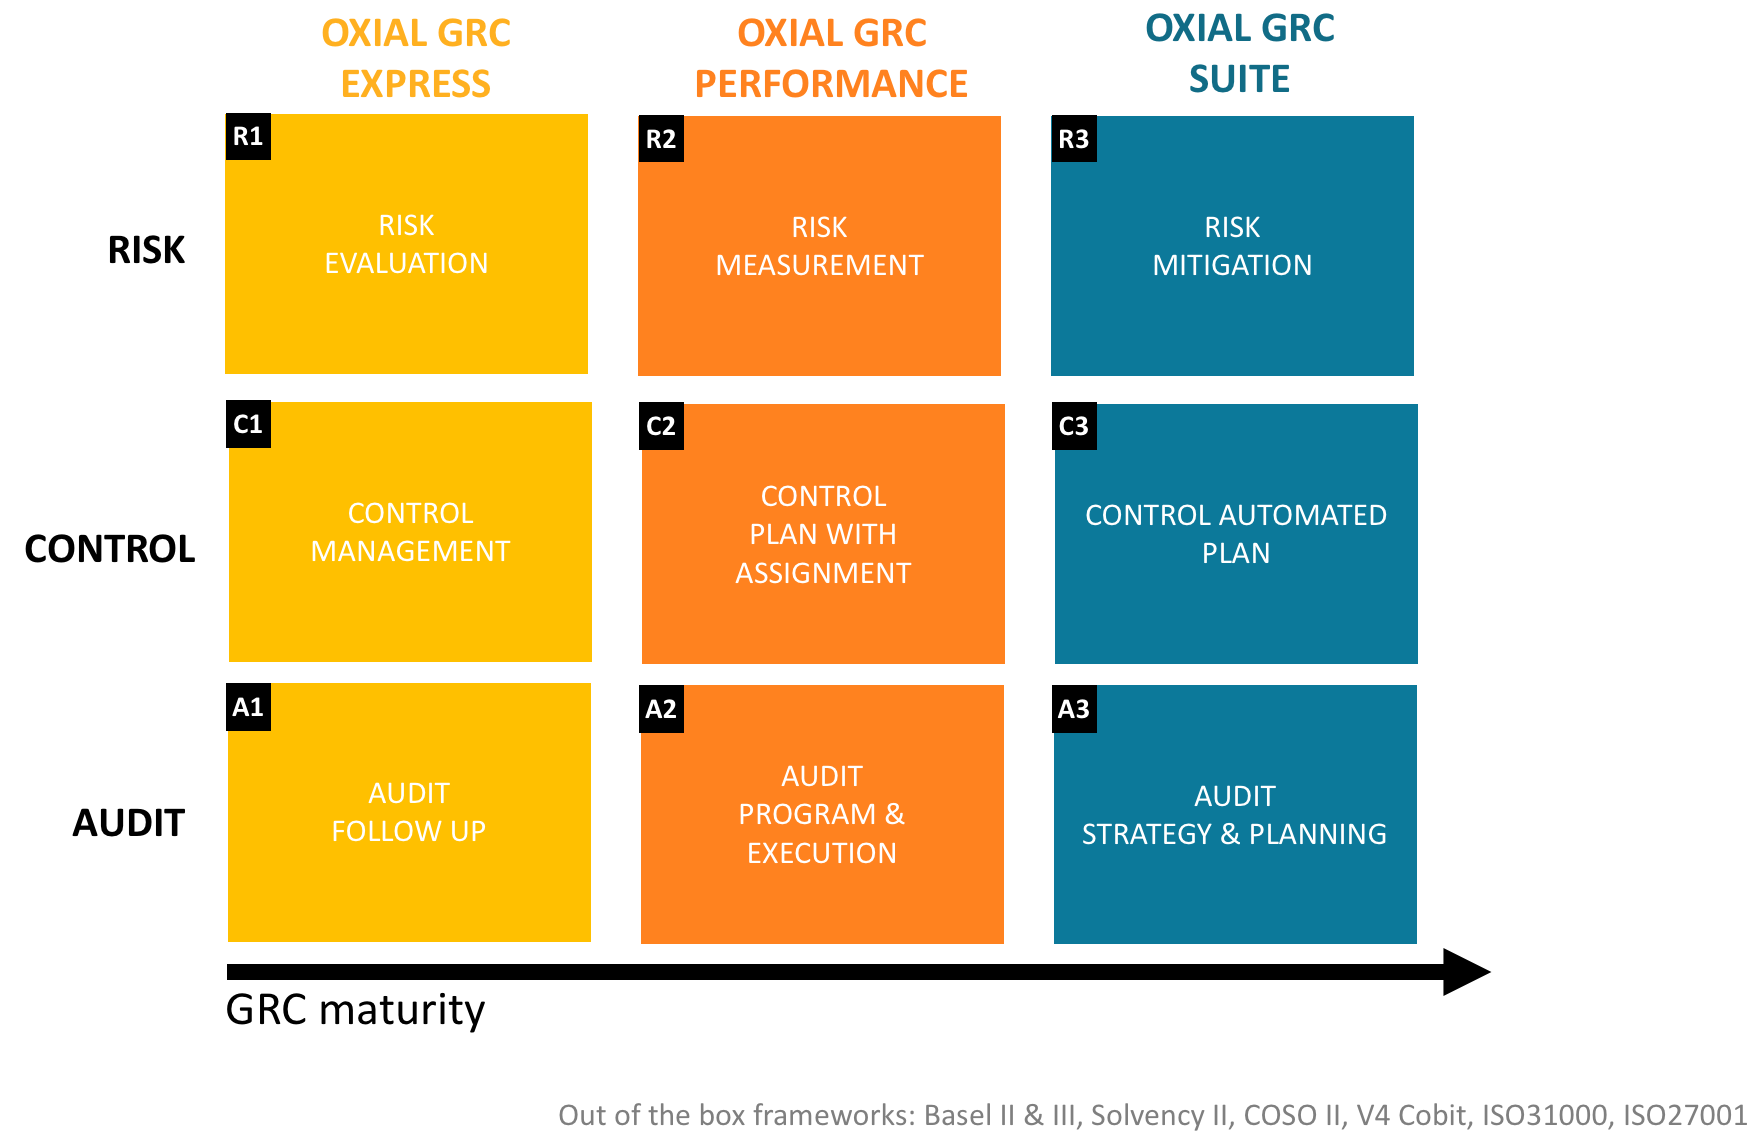 OXIAL GRC SOLUTIONS MATRIX